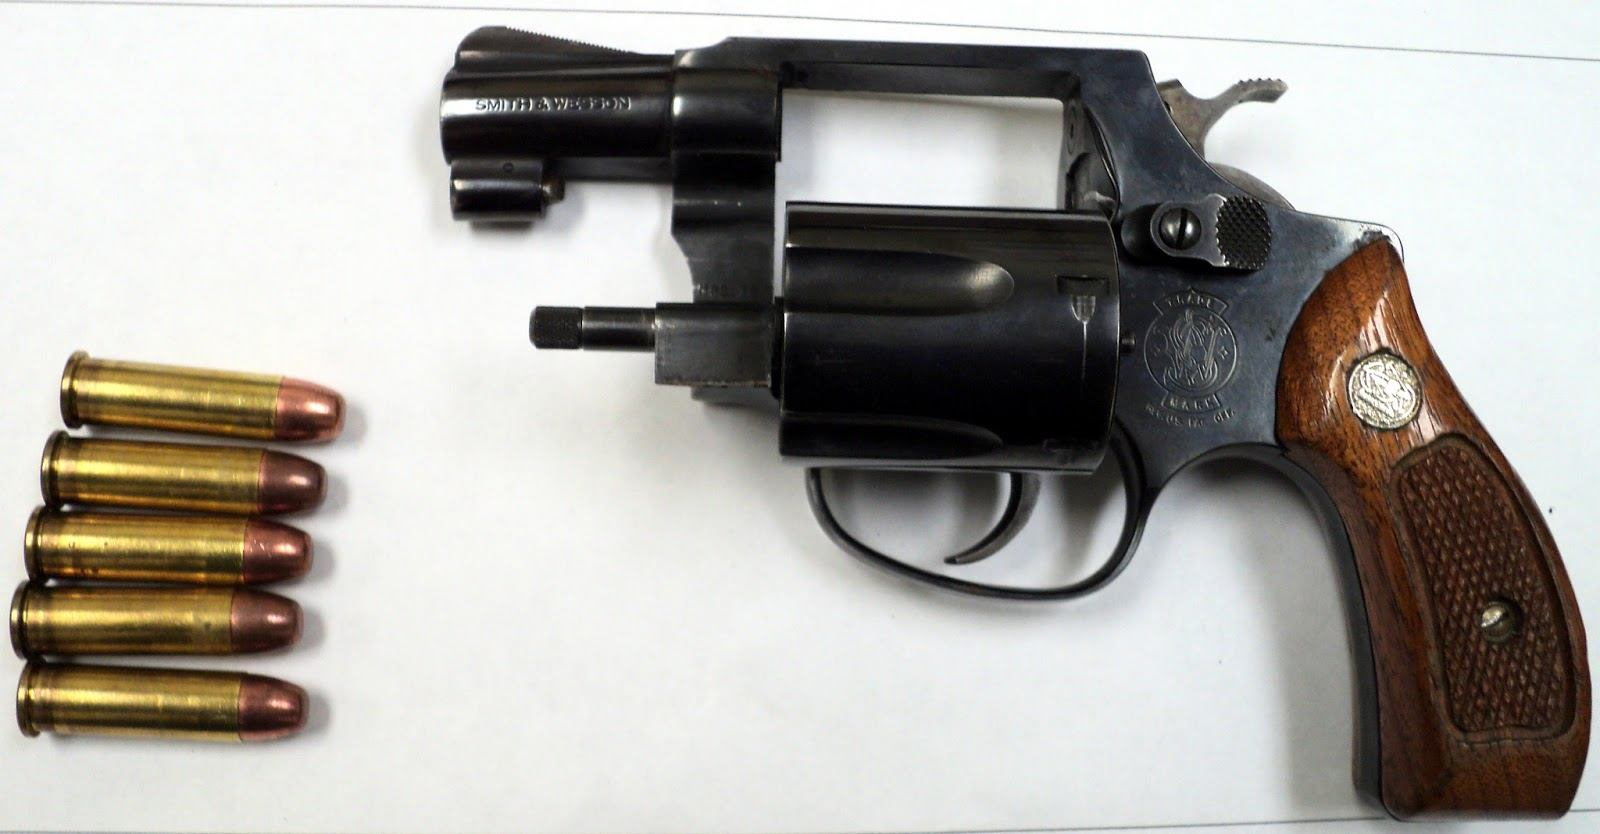 Loaded gun discovered in carry-on bag.